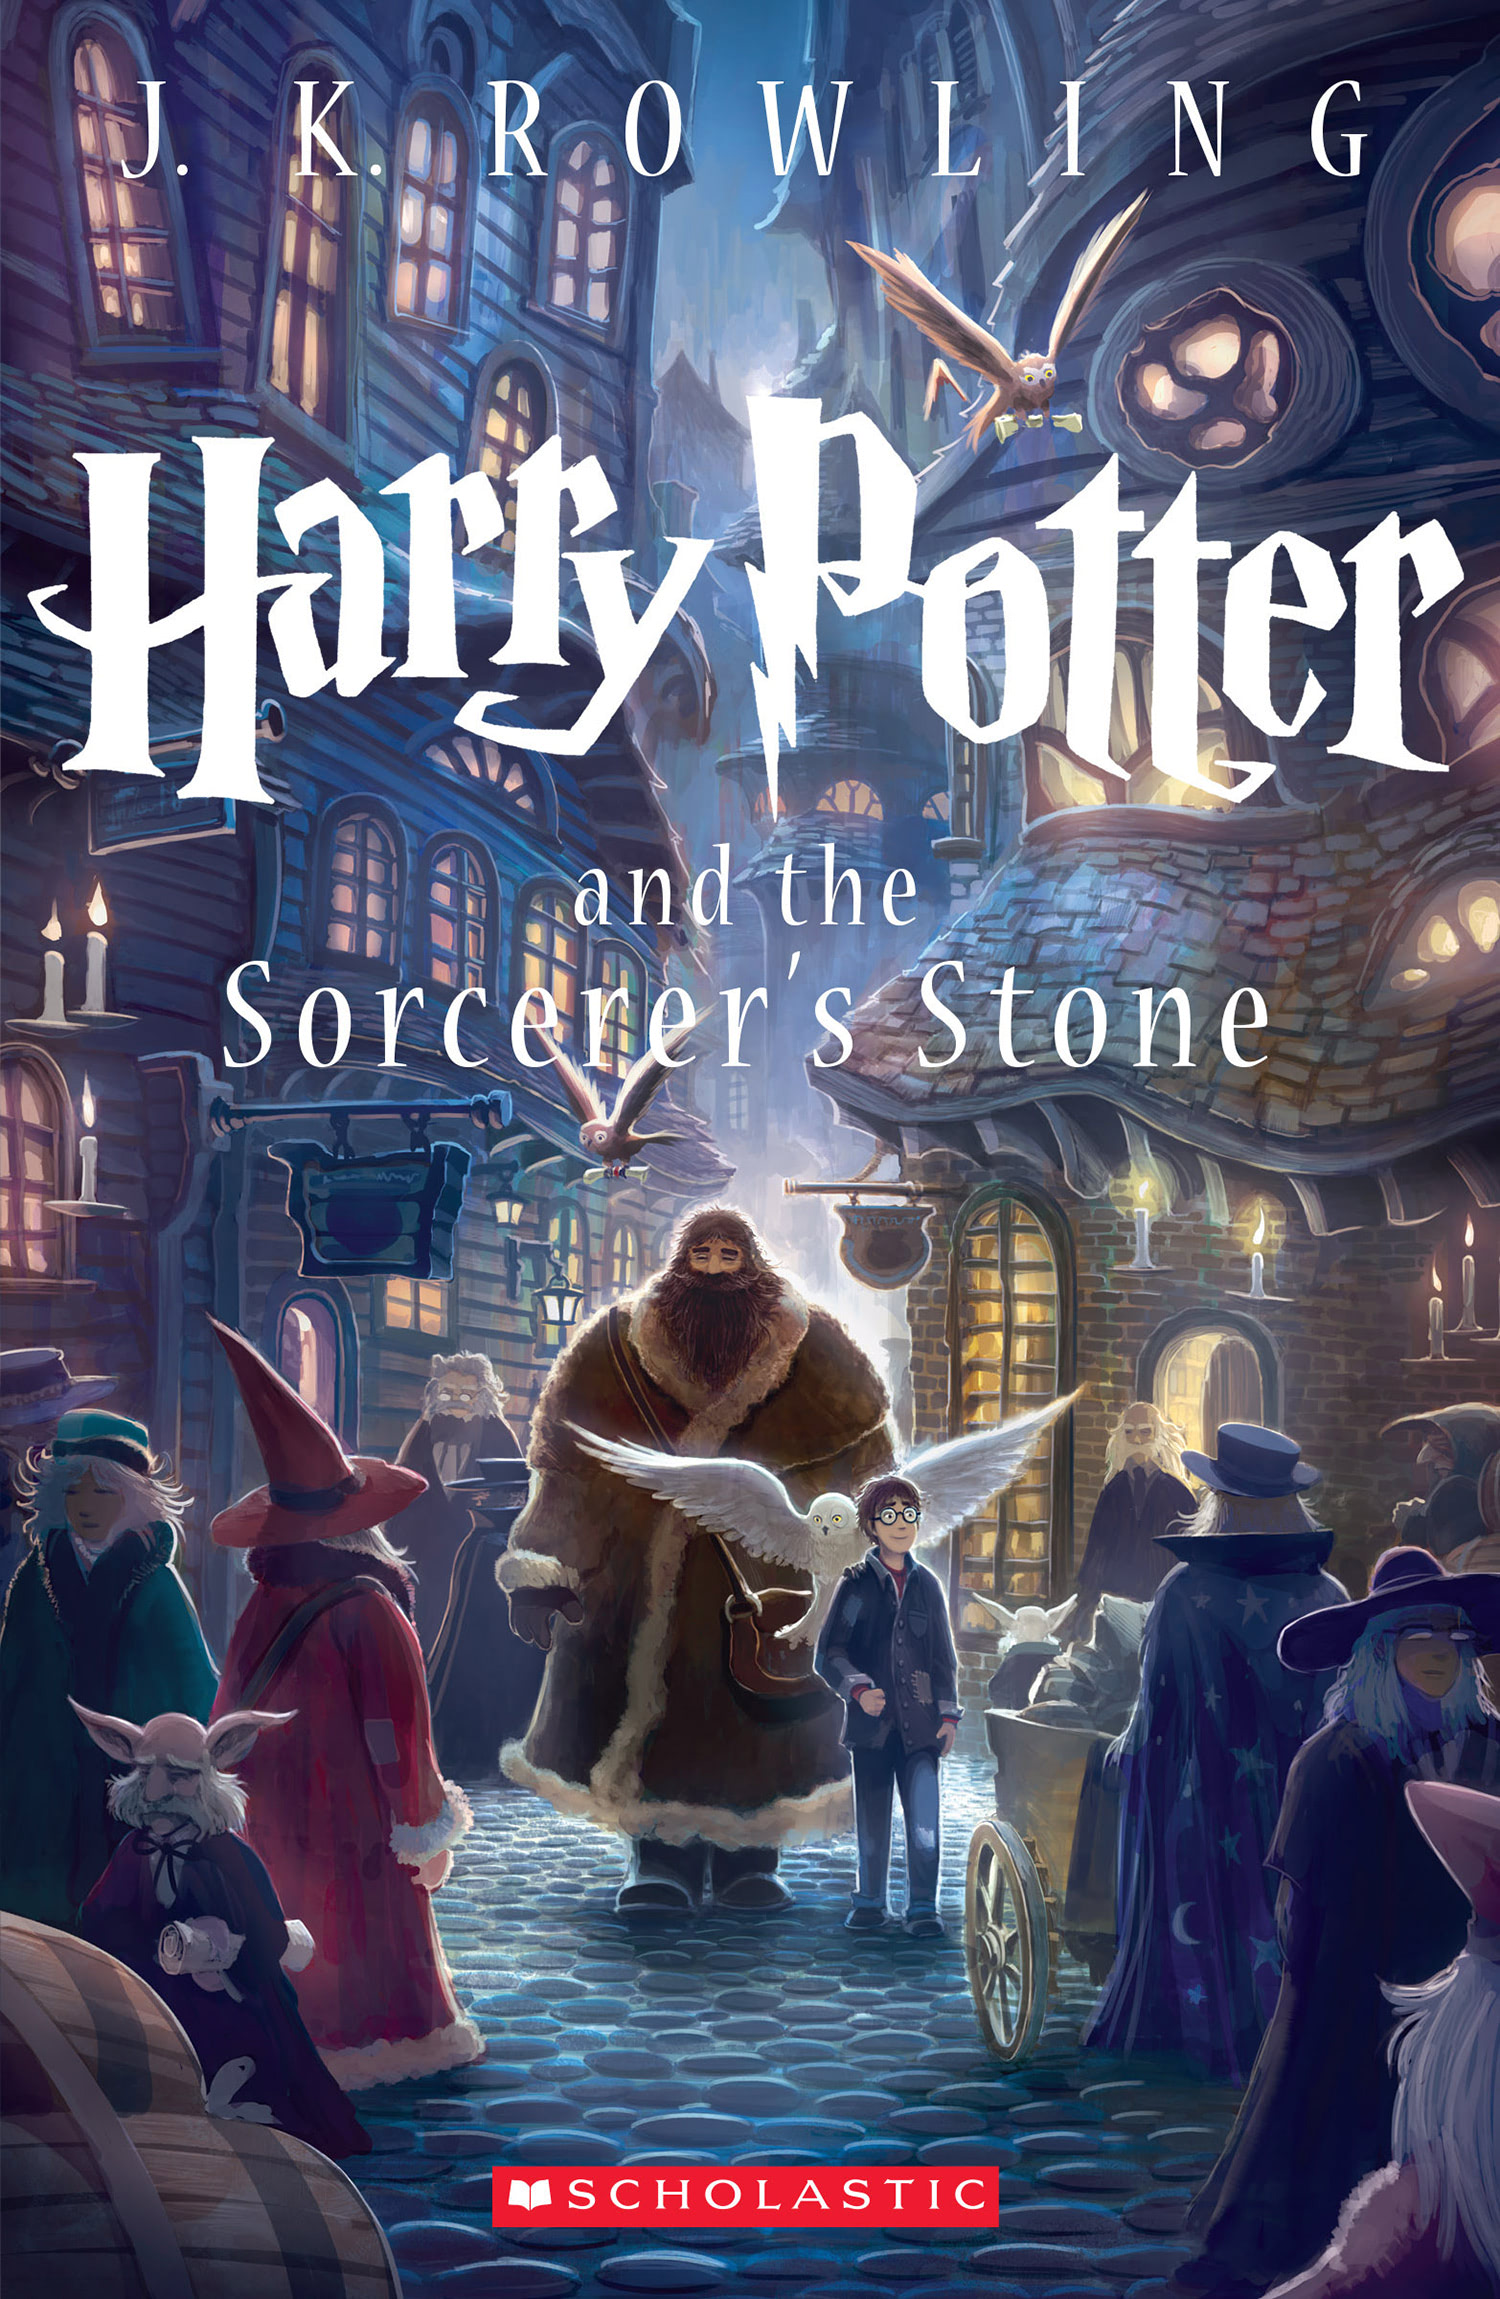 'Sorcerer's Stone' US children's edition (2013)